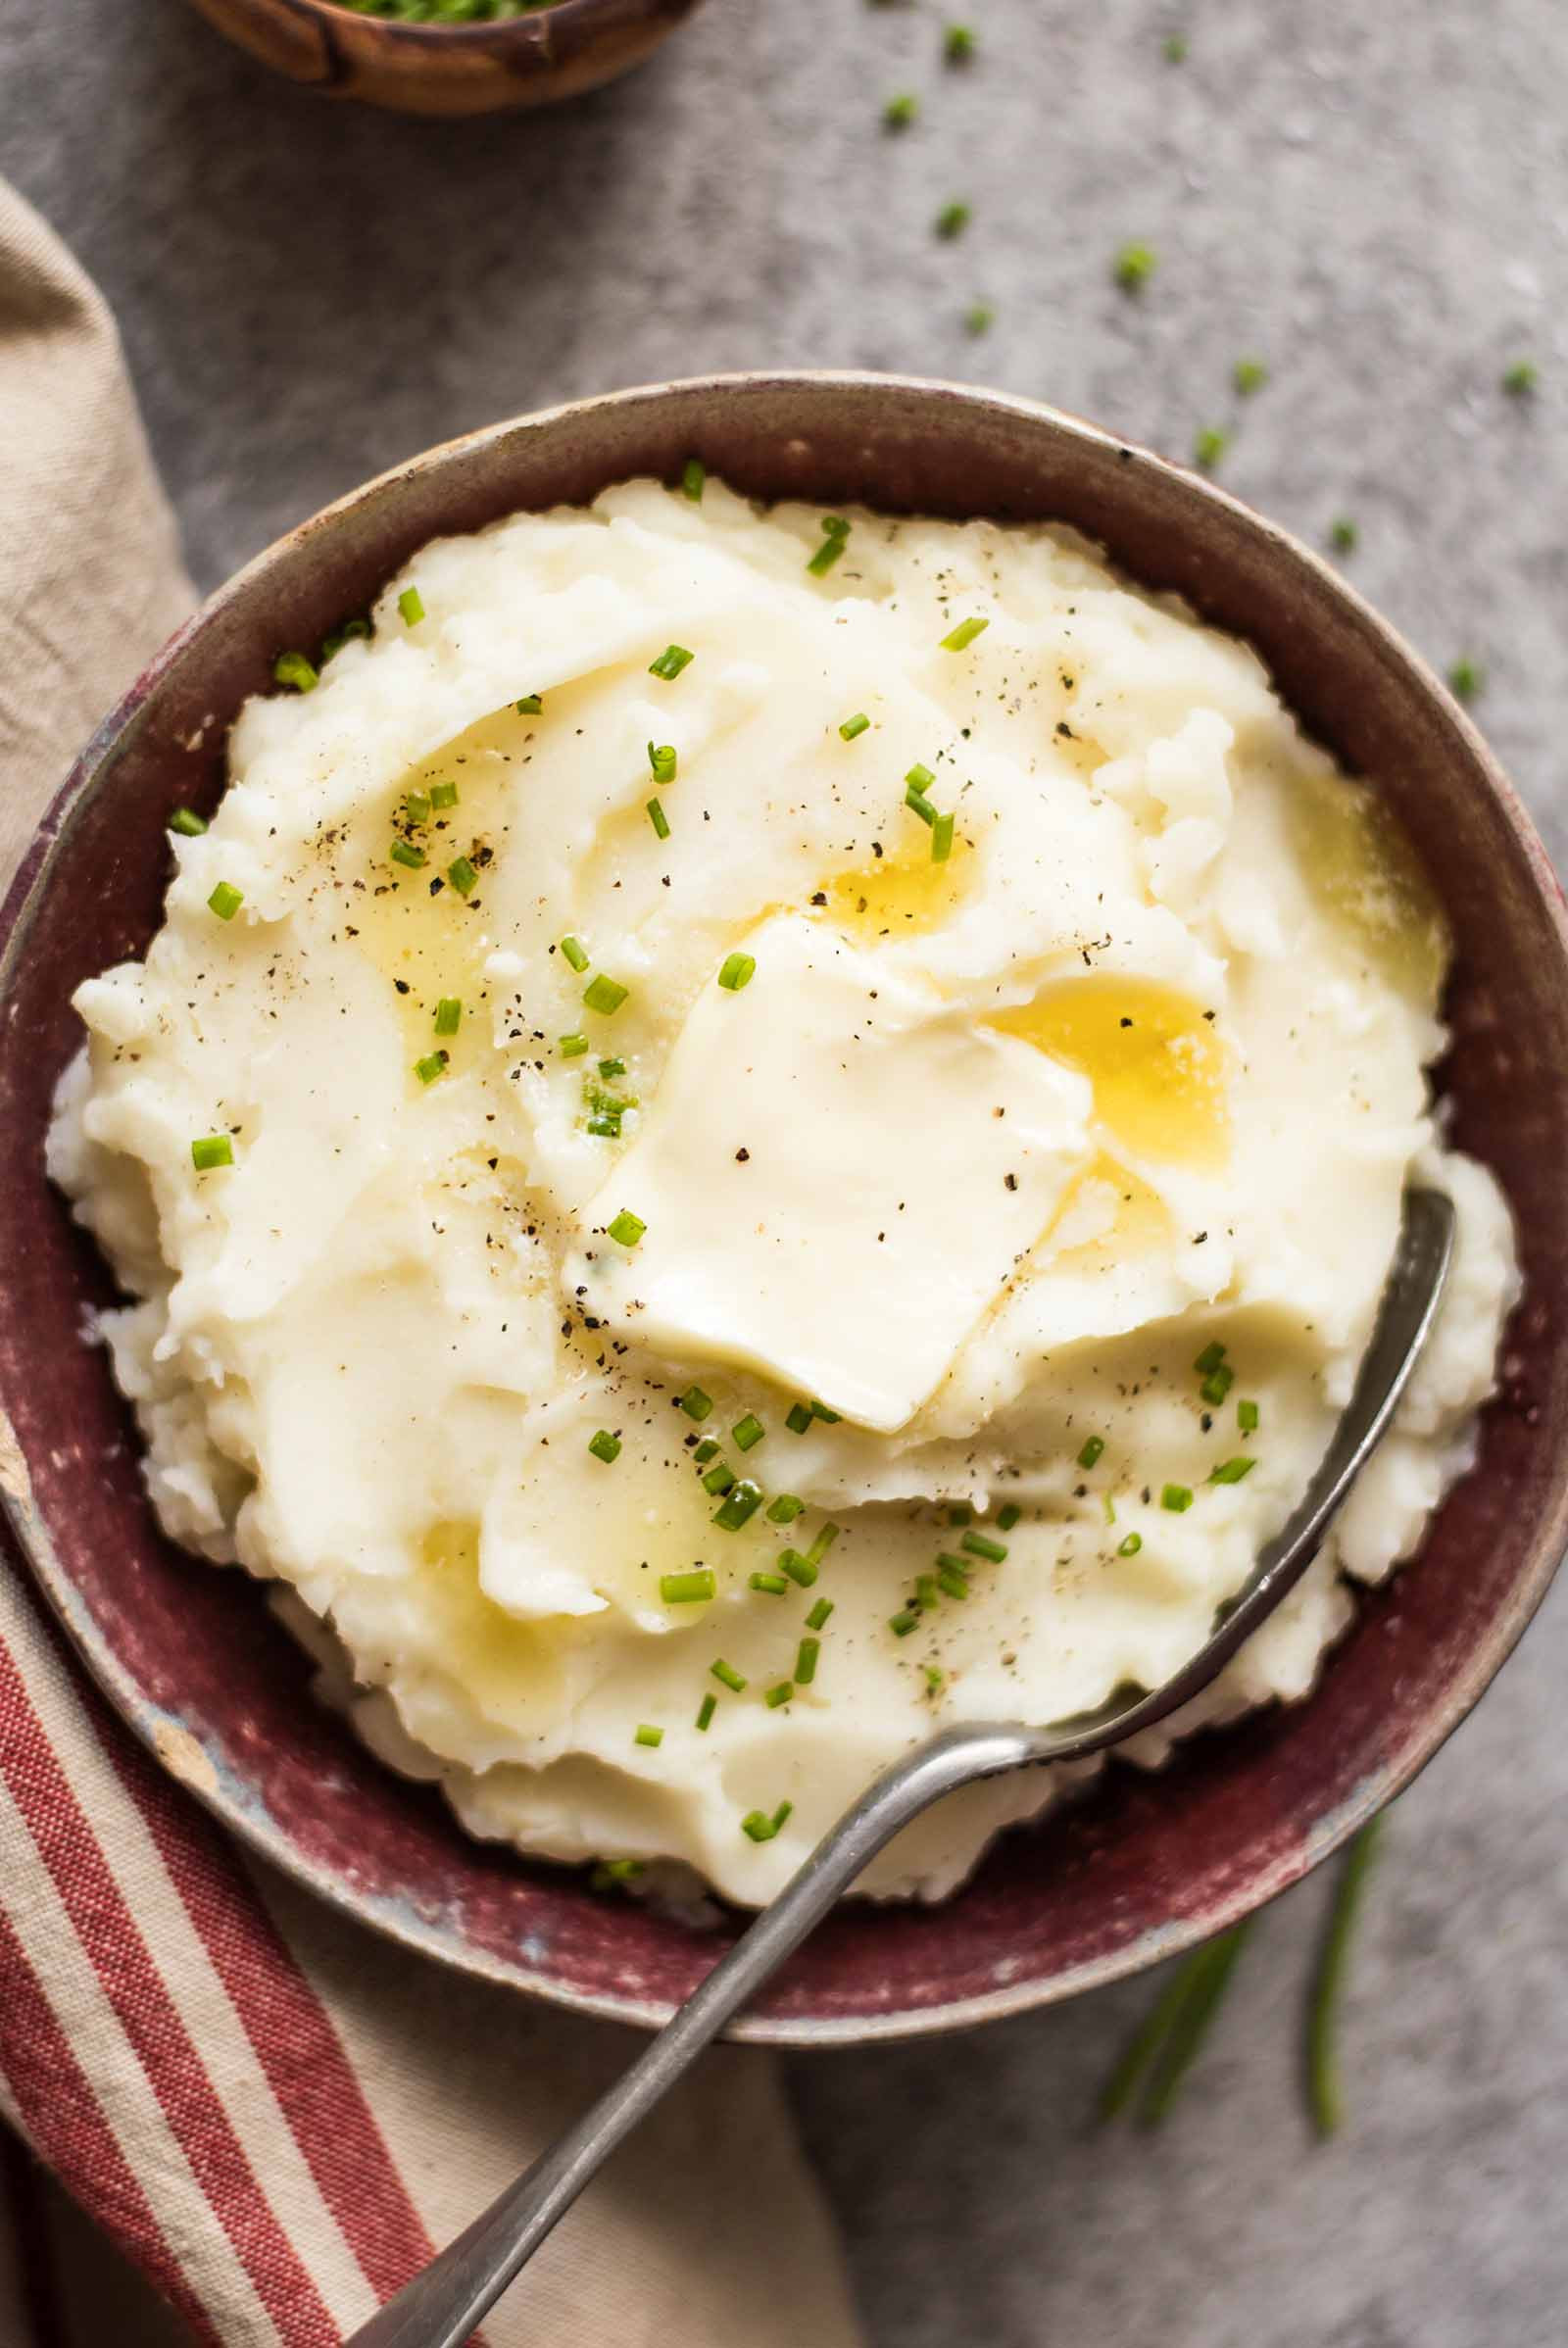 Mashed Potatoes For Thanksgiving  Crock Pot Mashed Potatoes Easy & No Stress